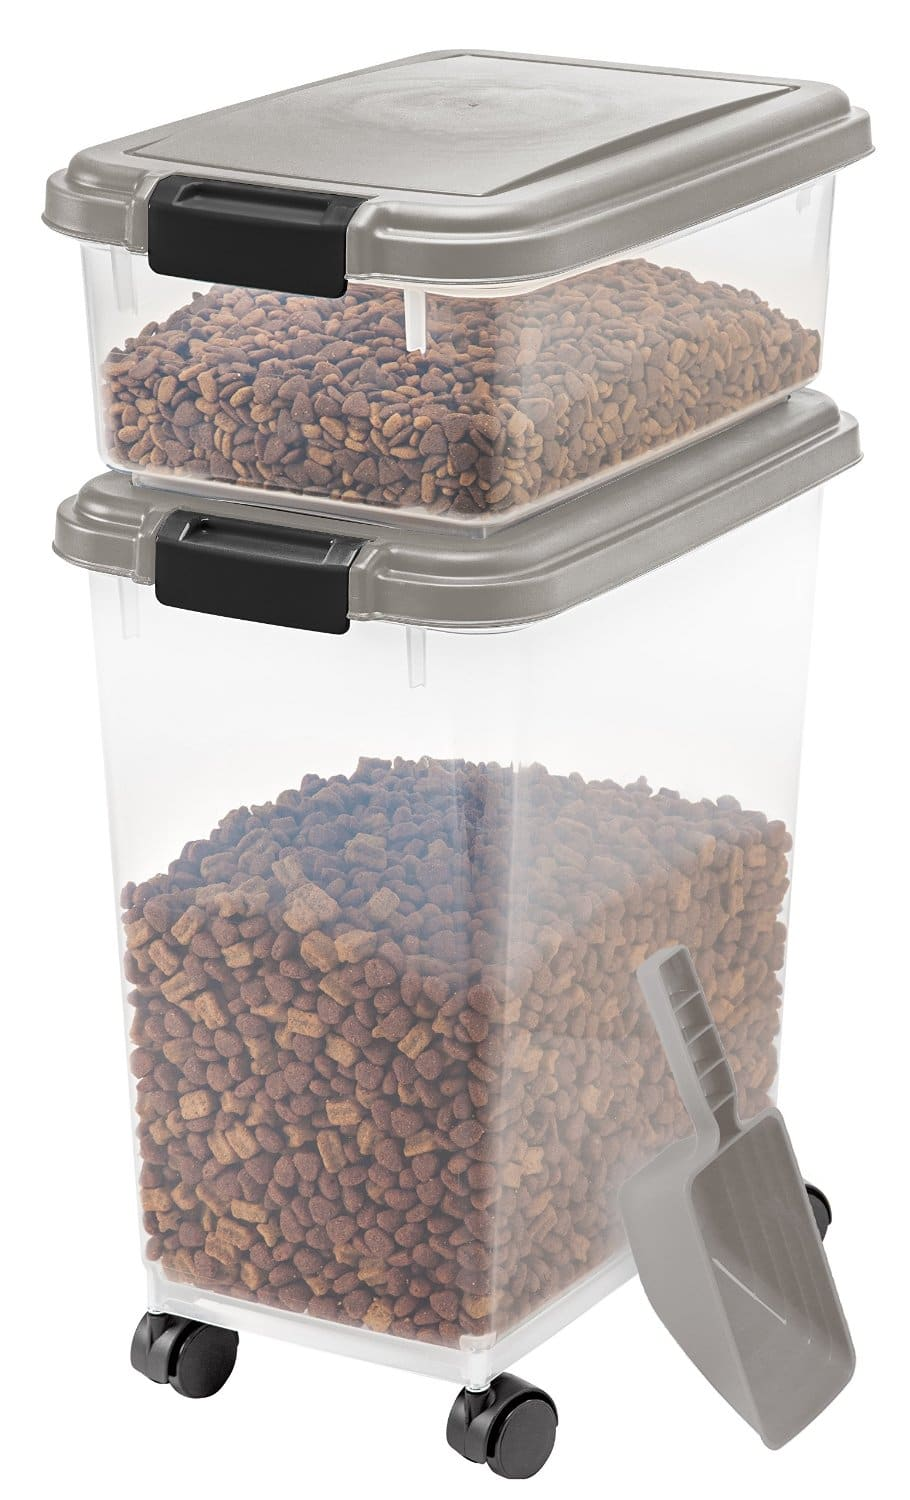 2-Piece IRIS Airtight Pet Food Container Combo Kit (Chrome)  $18.75 + Free In-Store Pickup